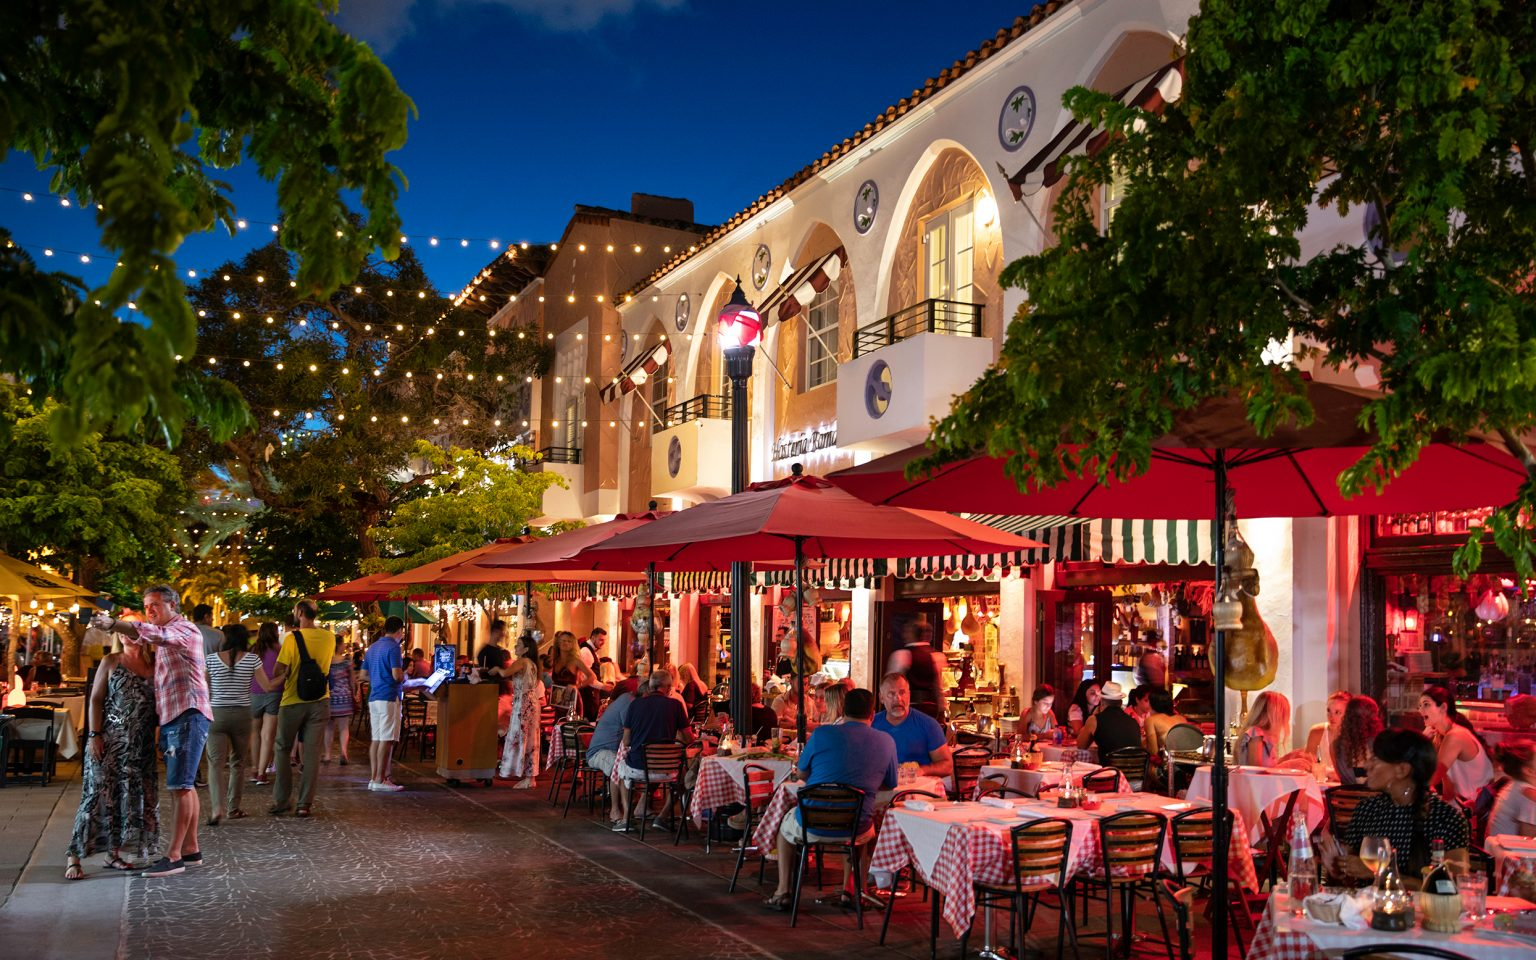 Espanola Way Restaurants Shopping And Entertainment